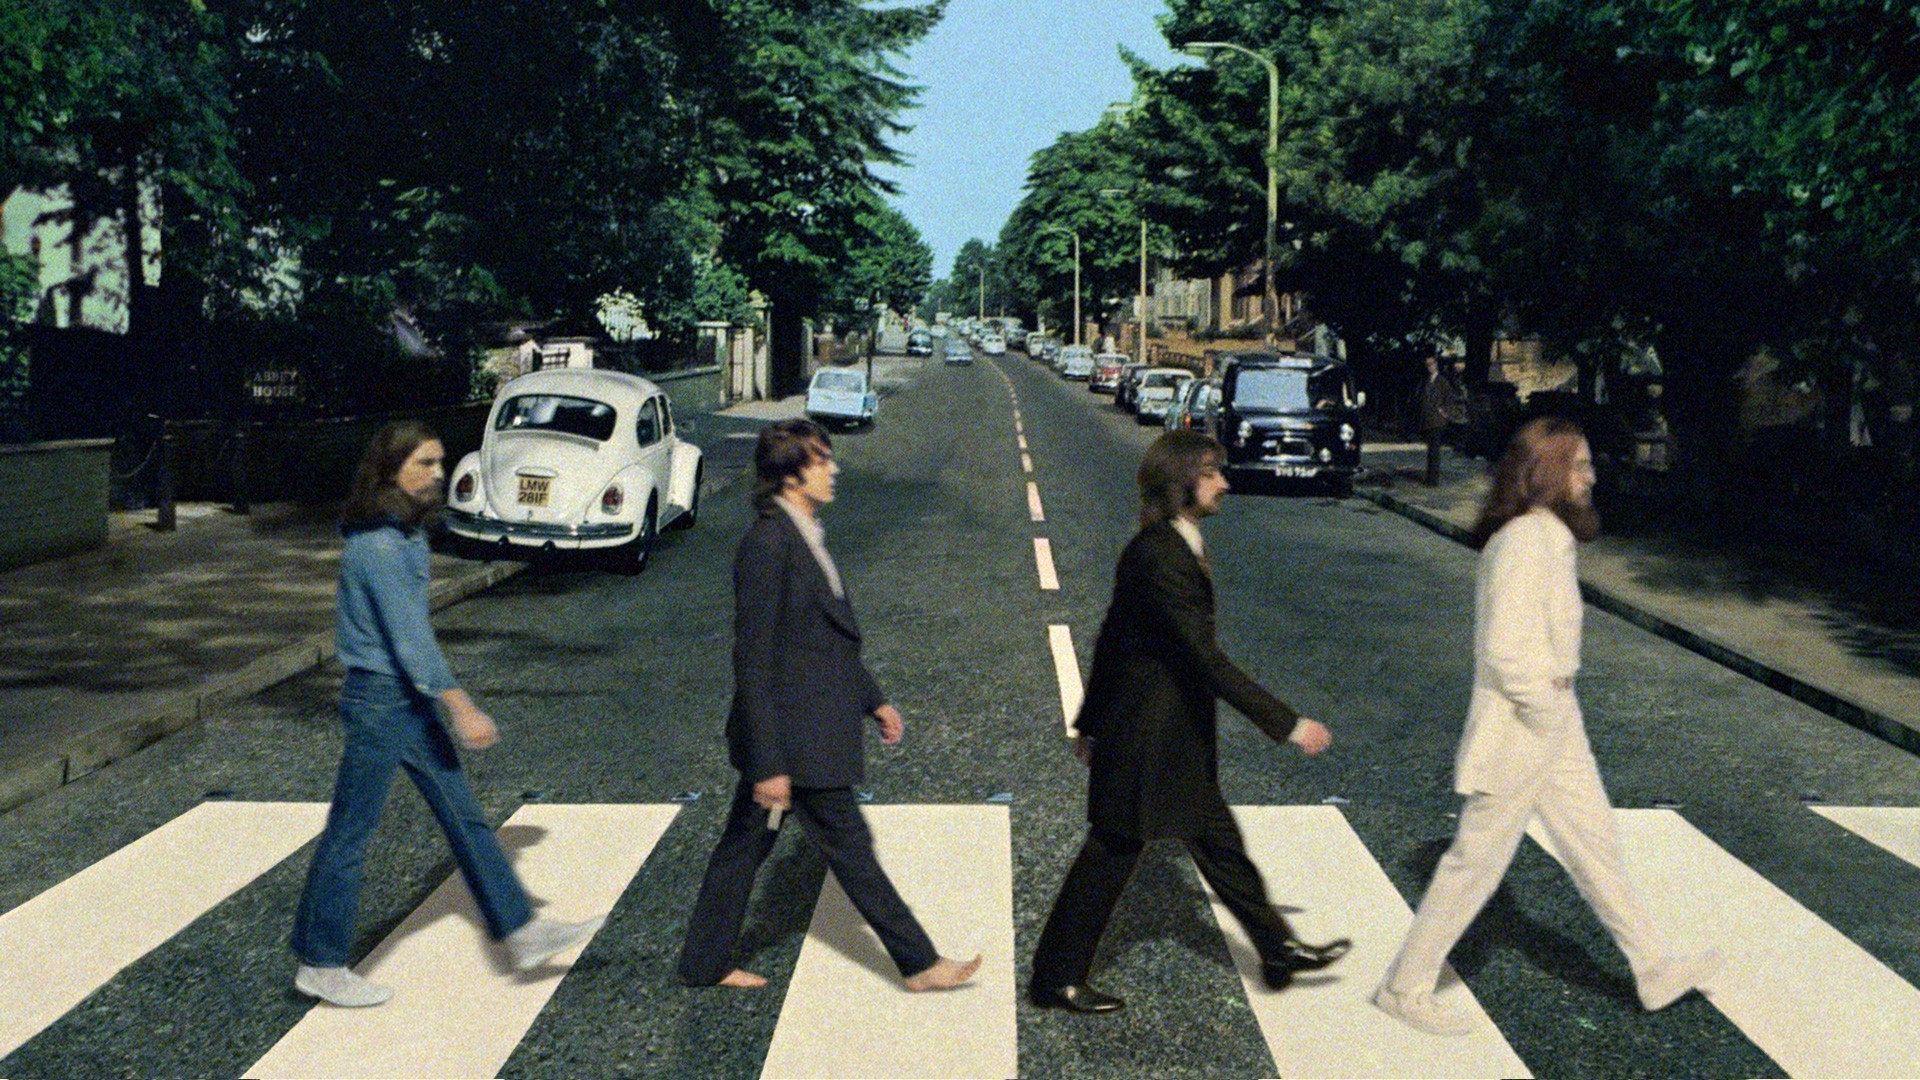 Abbey Road Wallpaper 60 images 1920x1080